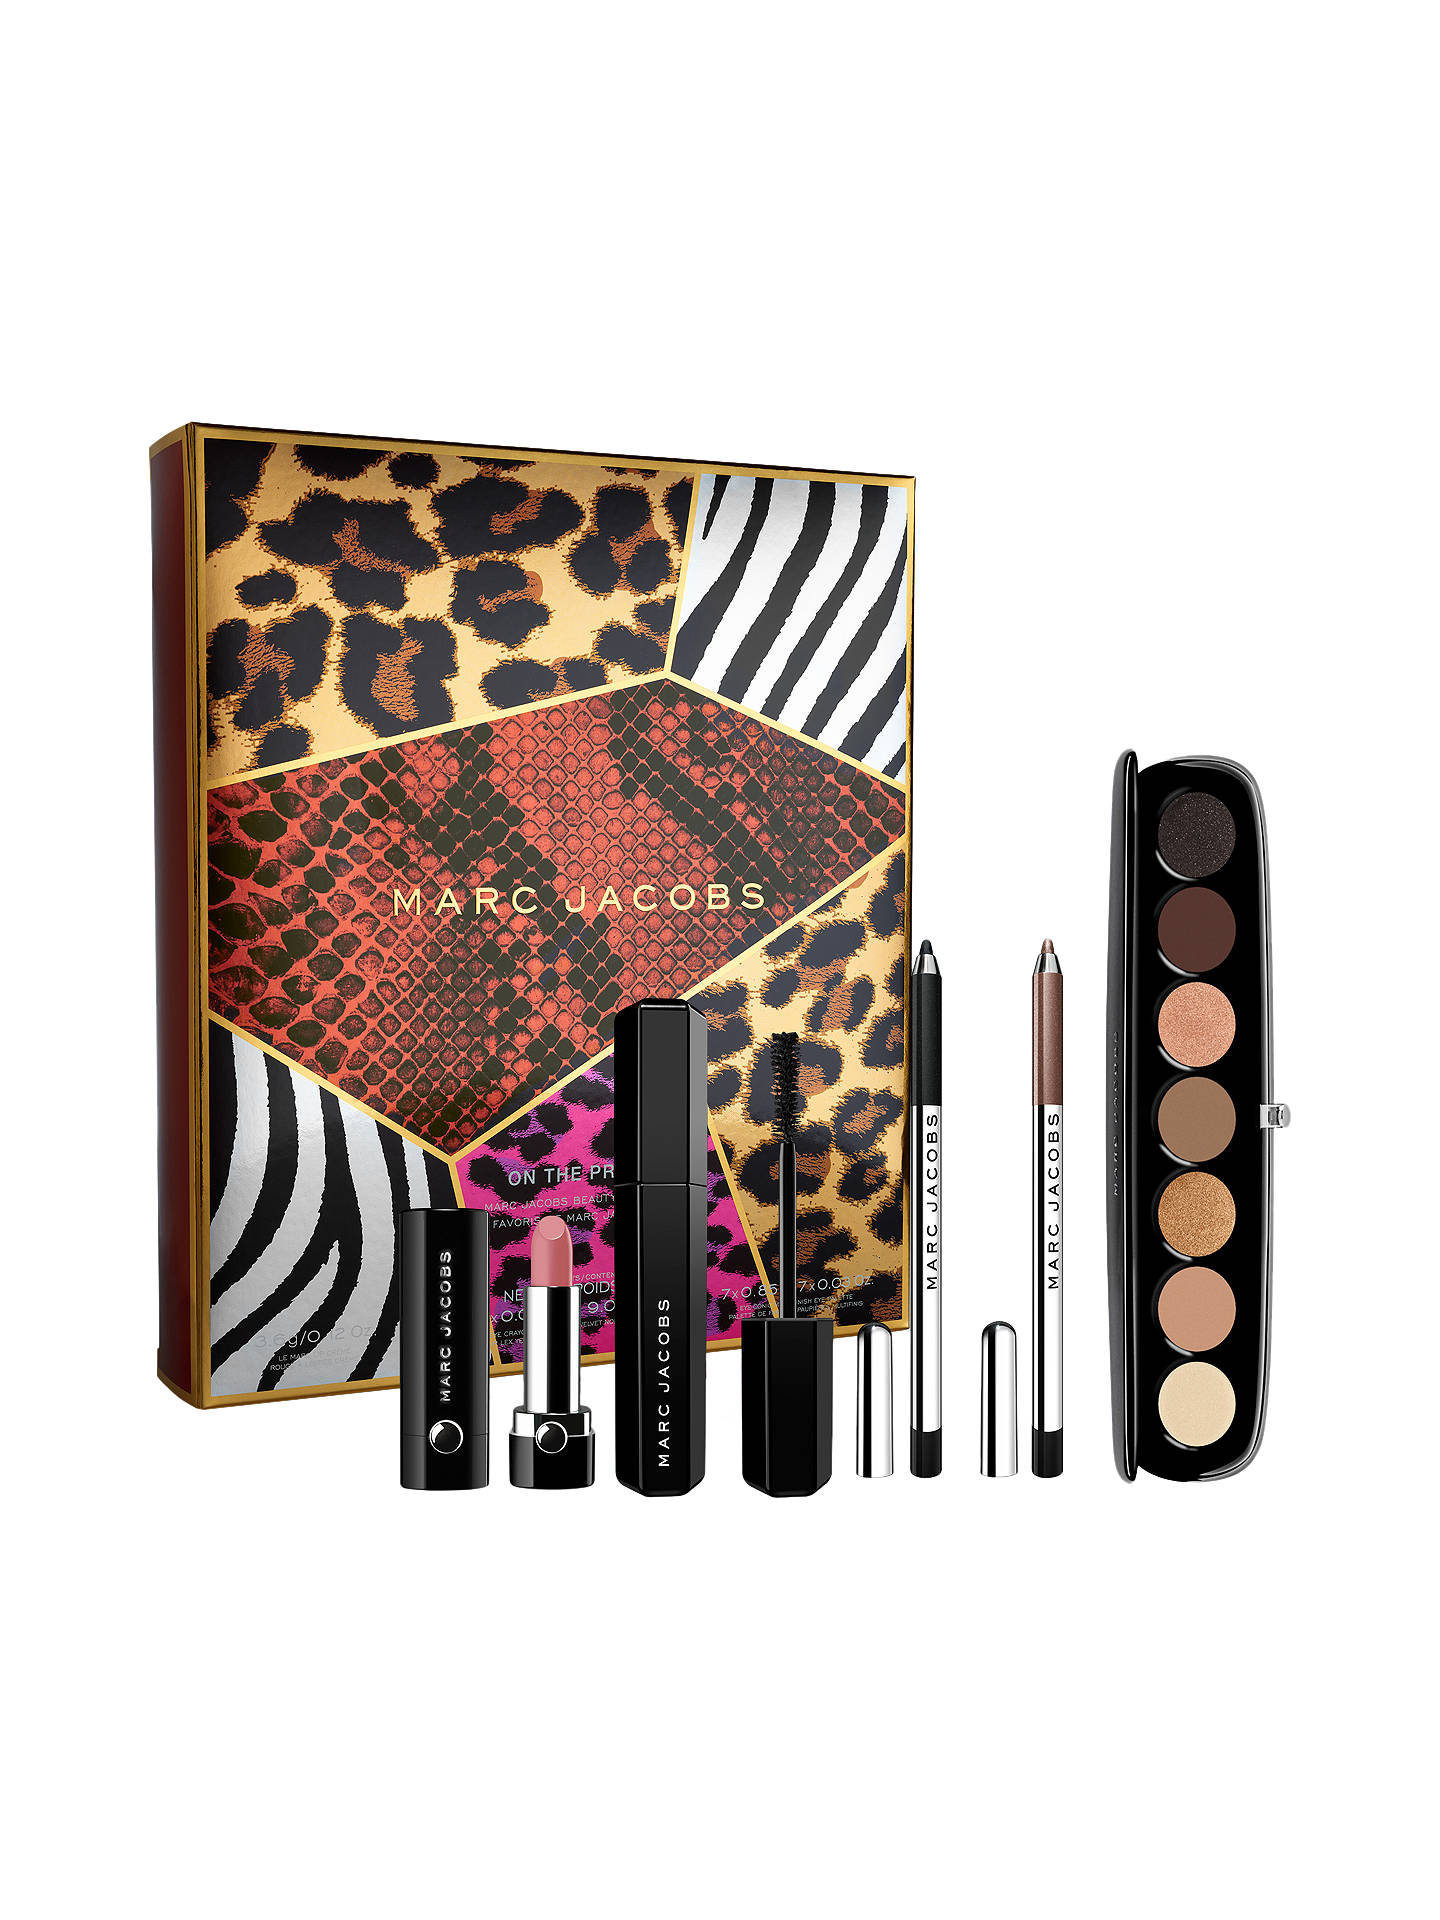 Buy Marc Jacobs 'On The Prowl' Makeup Gift Set Online at johnlewis.com